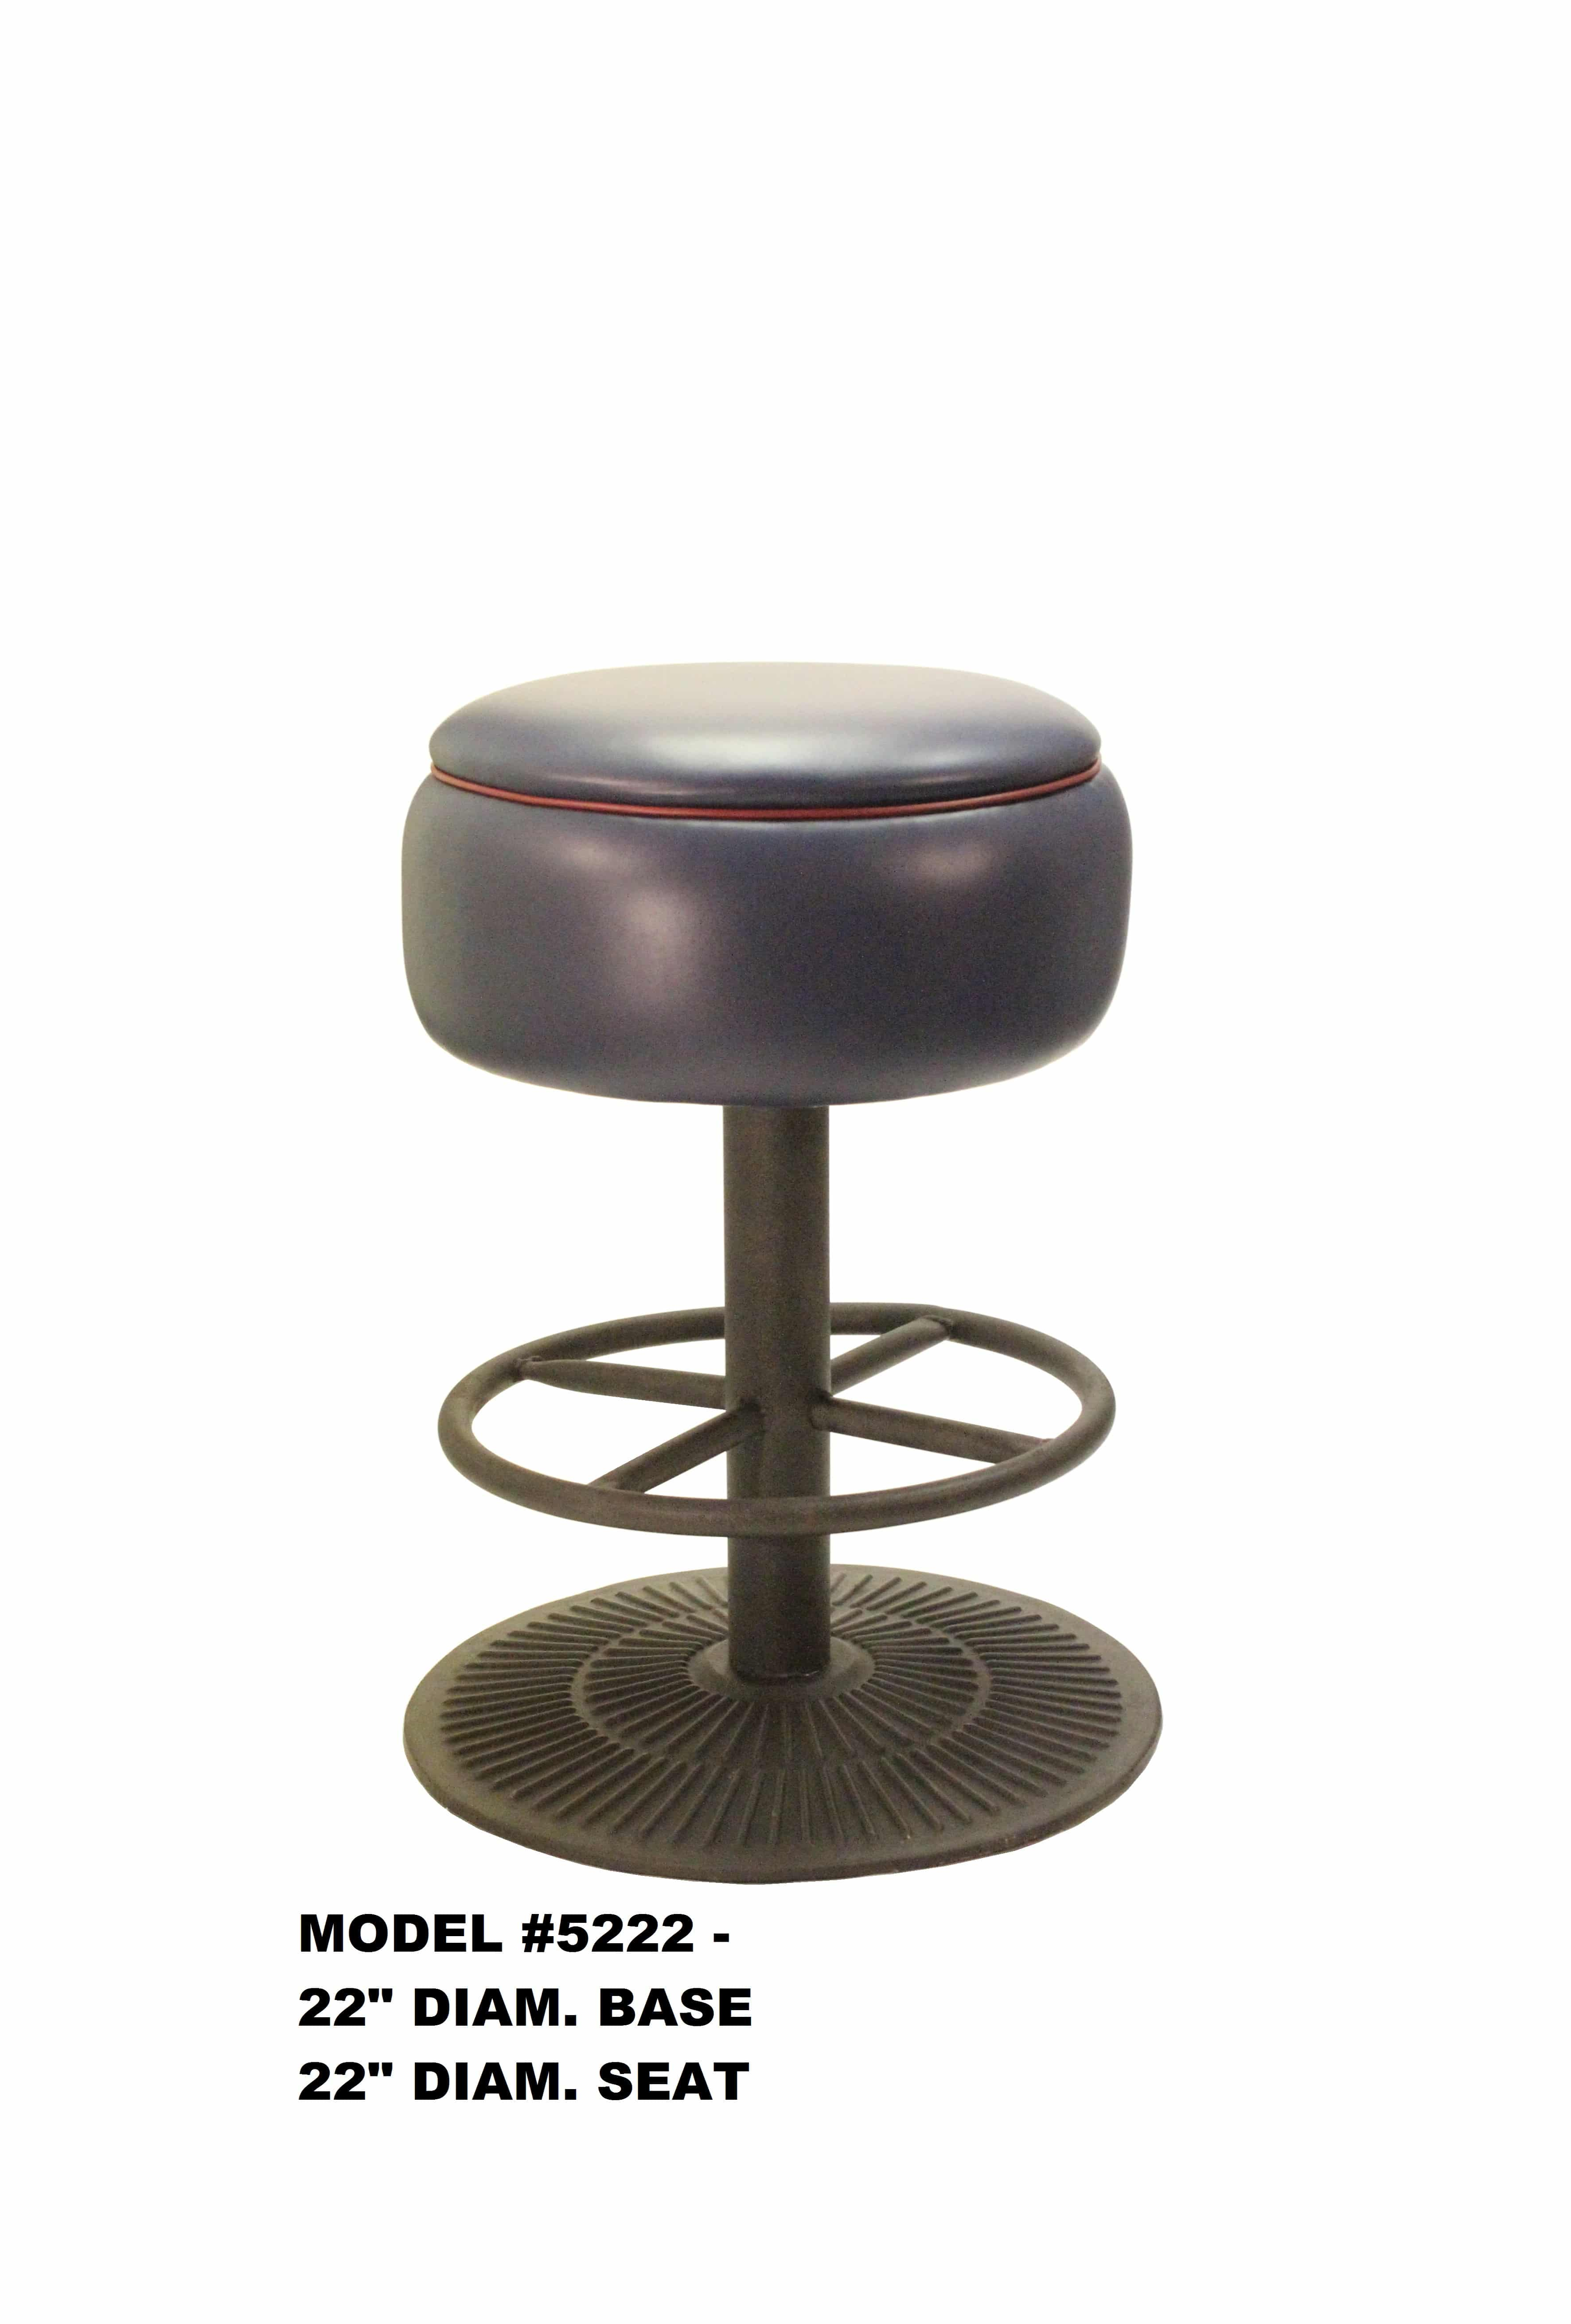 Tremendous Heavy Duty Round Seat Swivel Backless Metal Bar Stool Pabps2019 Chair Design Images Pabps2019Com